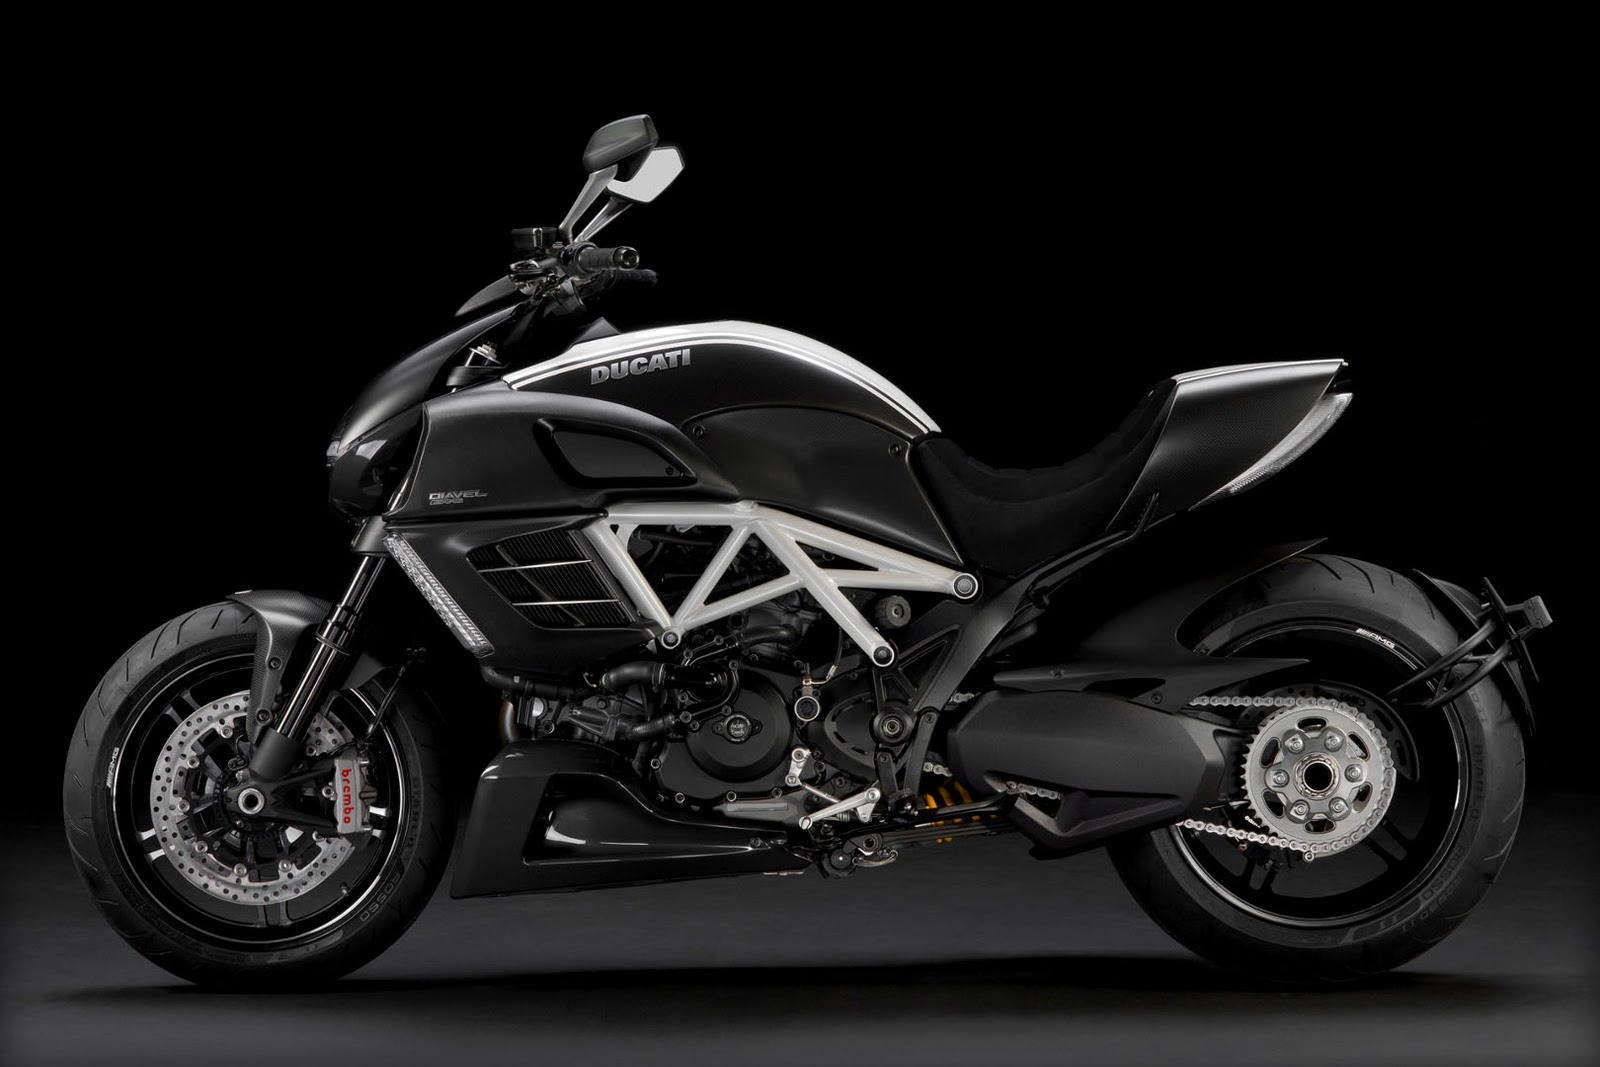 2012 ducati diavel amg limited edition. Black Bedroom Furniture Sets. Home Design Ideas